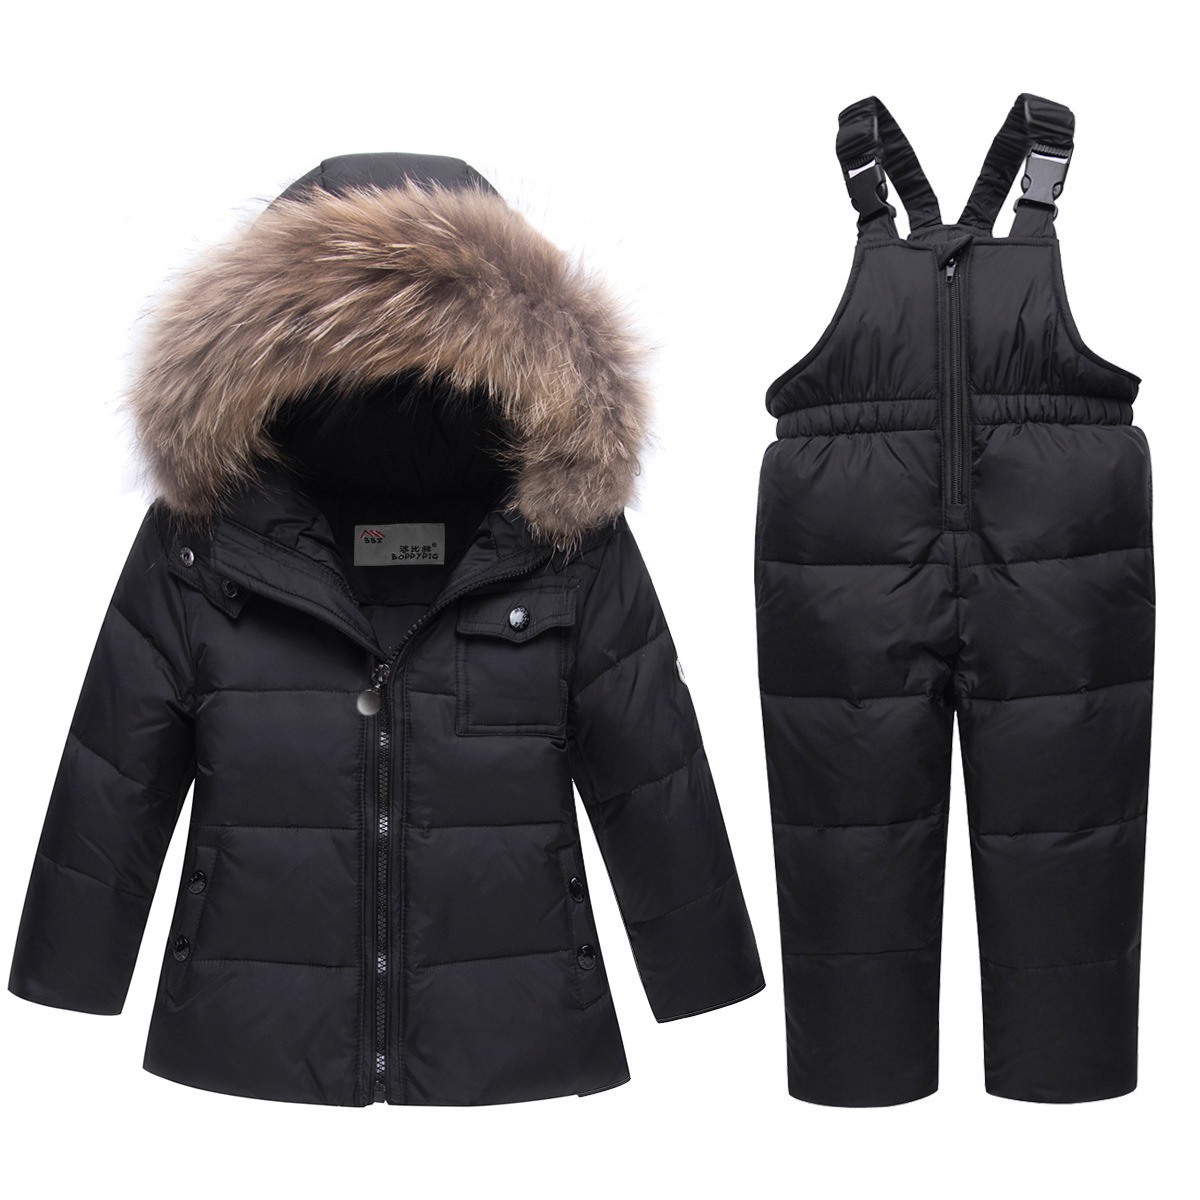 bcd9eeb7b Parka real Fur hooded boy baby overalls girl winter down jacket warm kids  coat children snowsuit snow clothes girls clothing Set | Mikes Wholesale  Mart